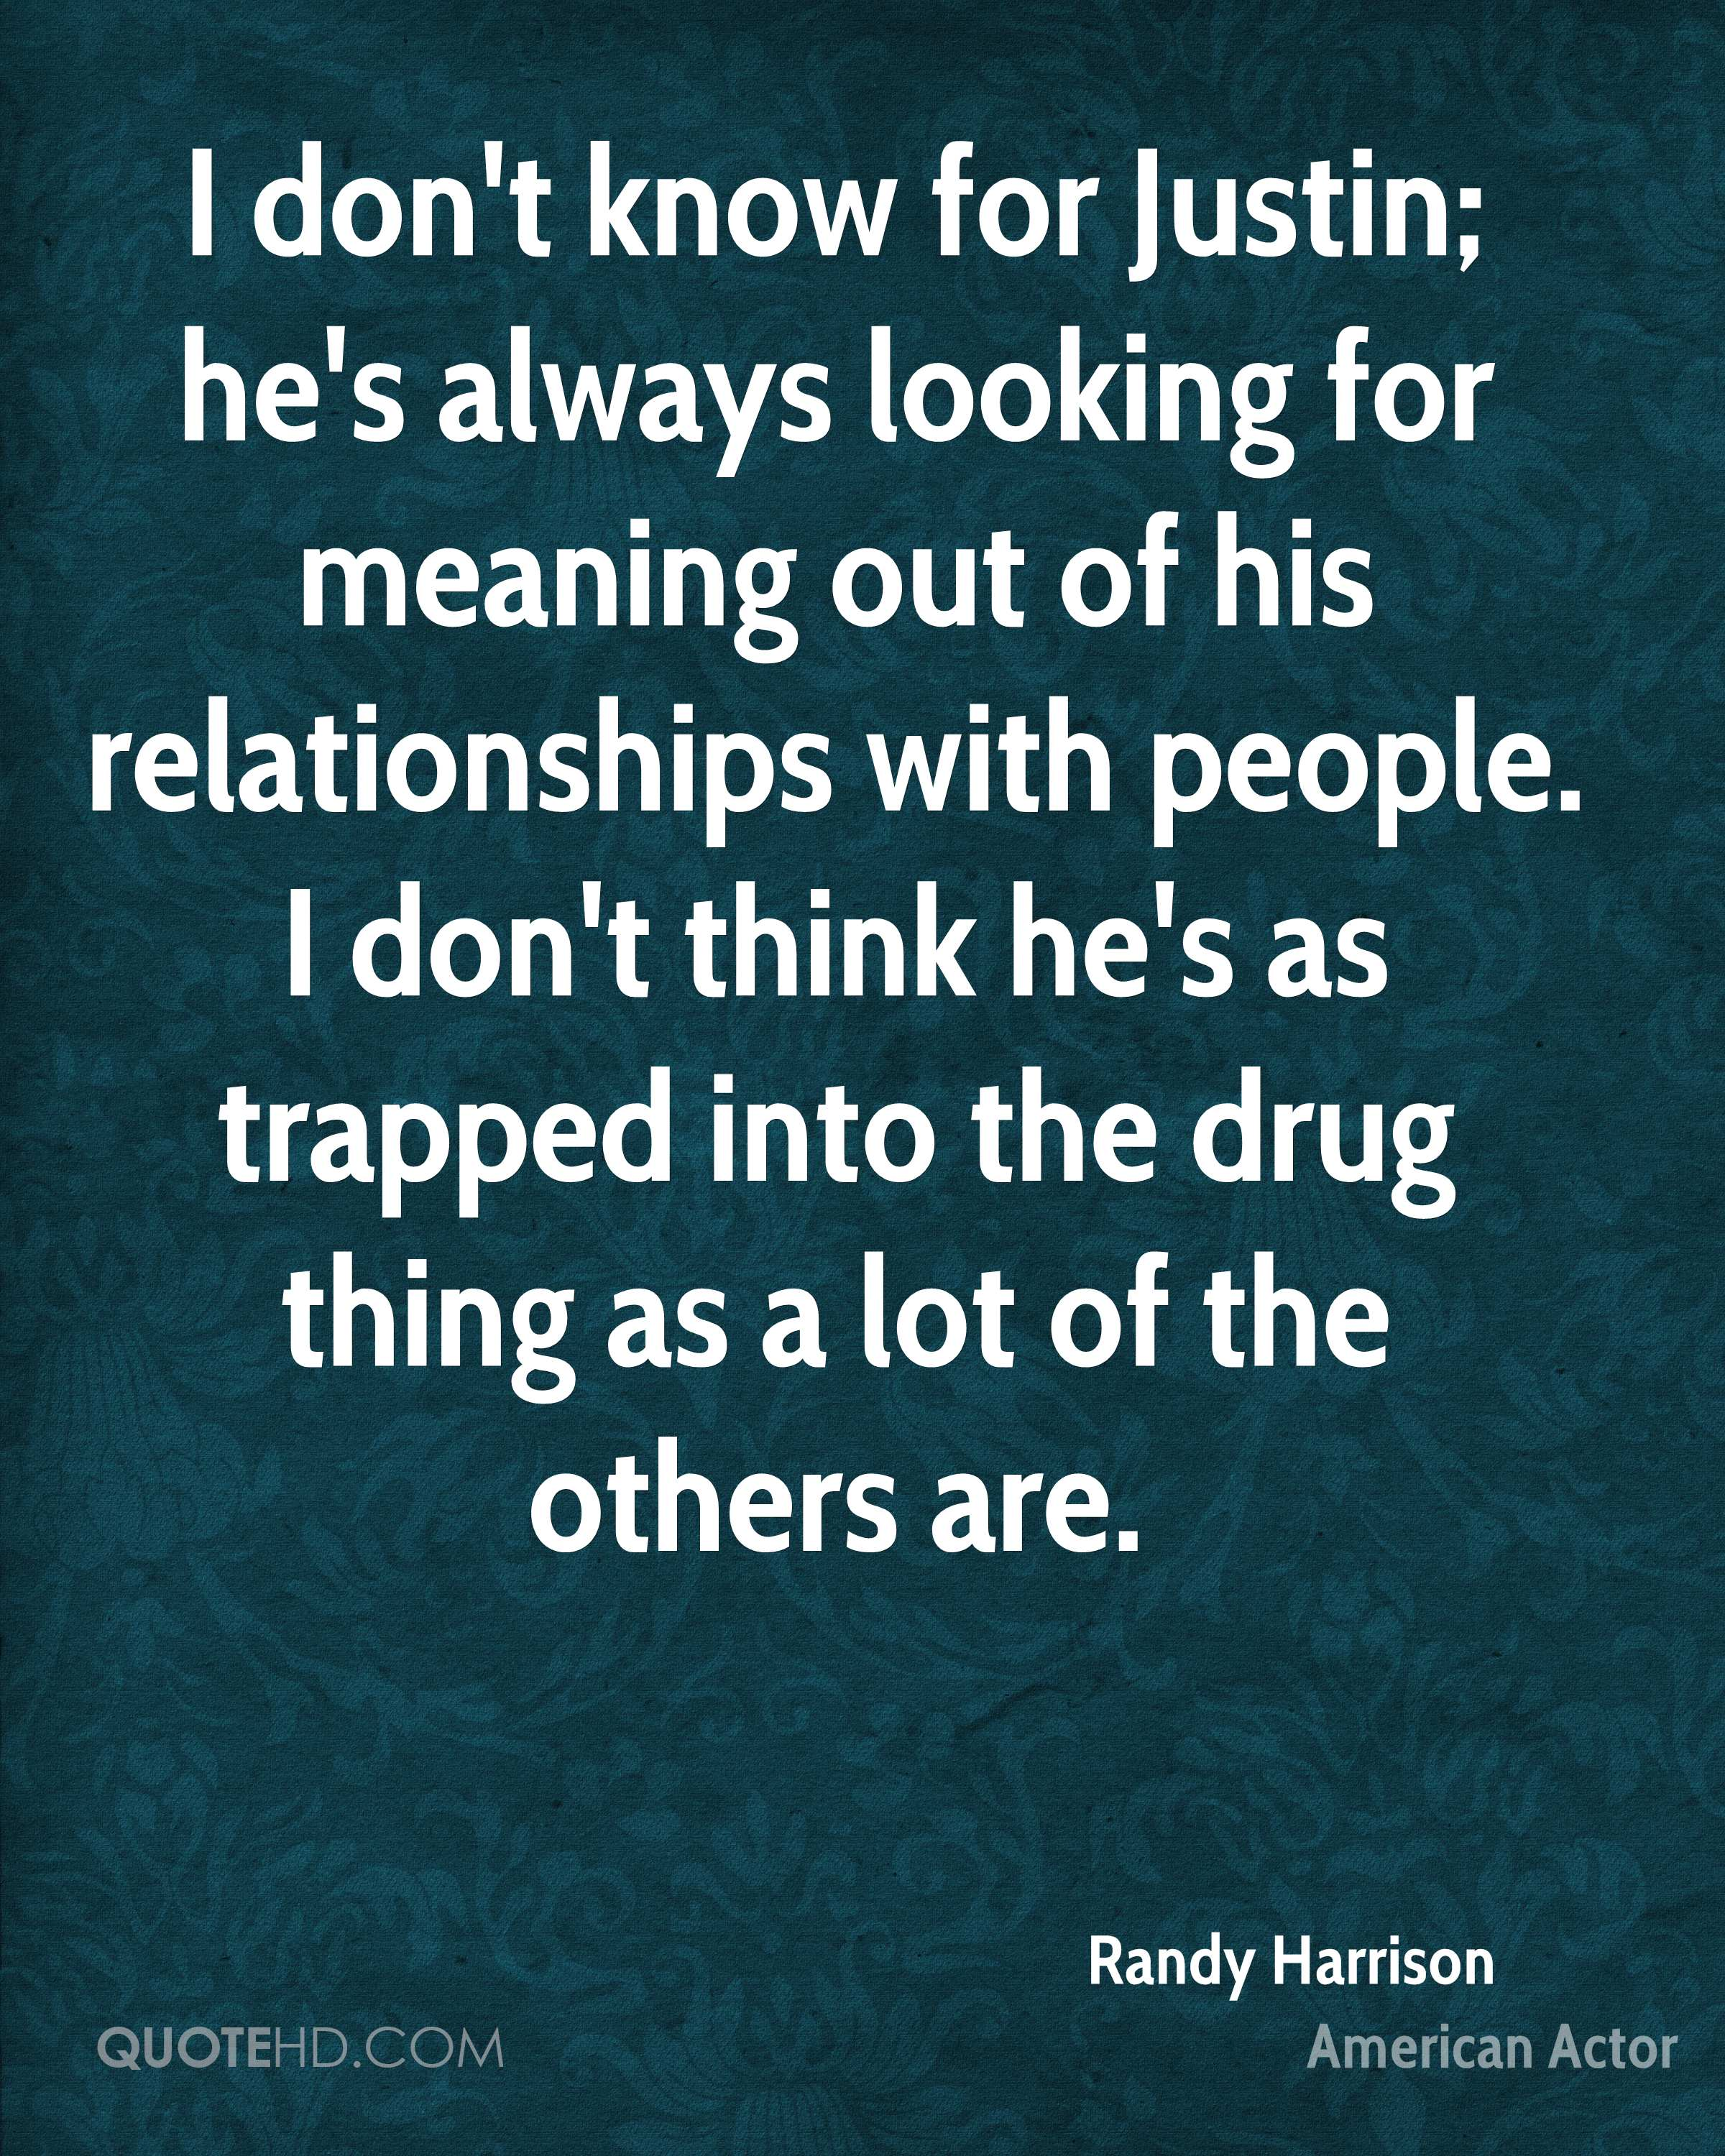 I don't know for Justin; he's always looking for meaning out of his relationships with people. I don't think he's as trapped into the drug thing as a lot of the others are.